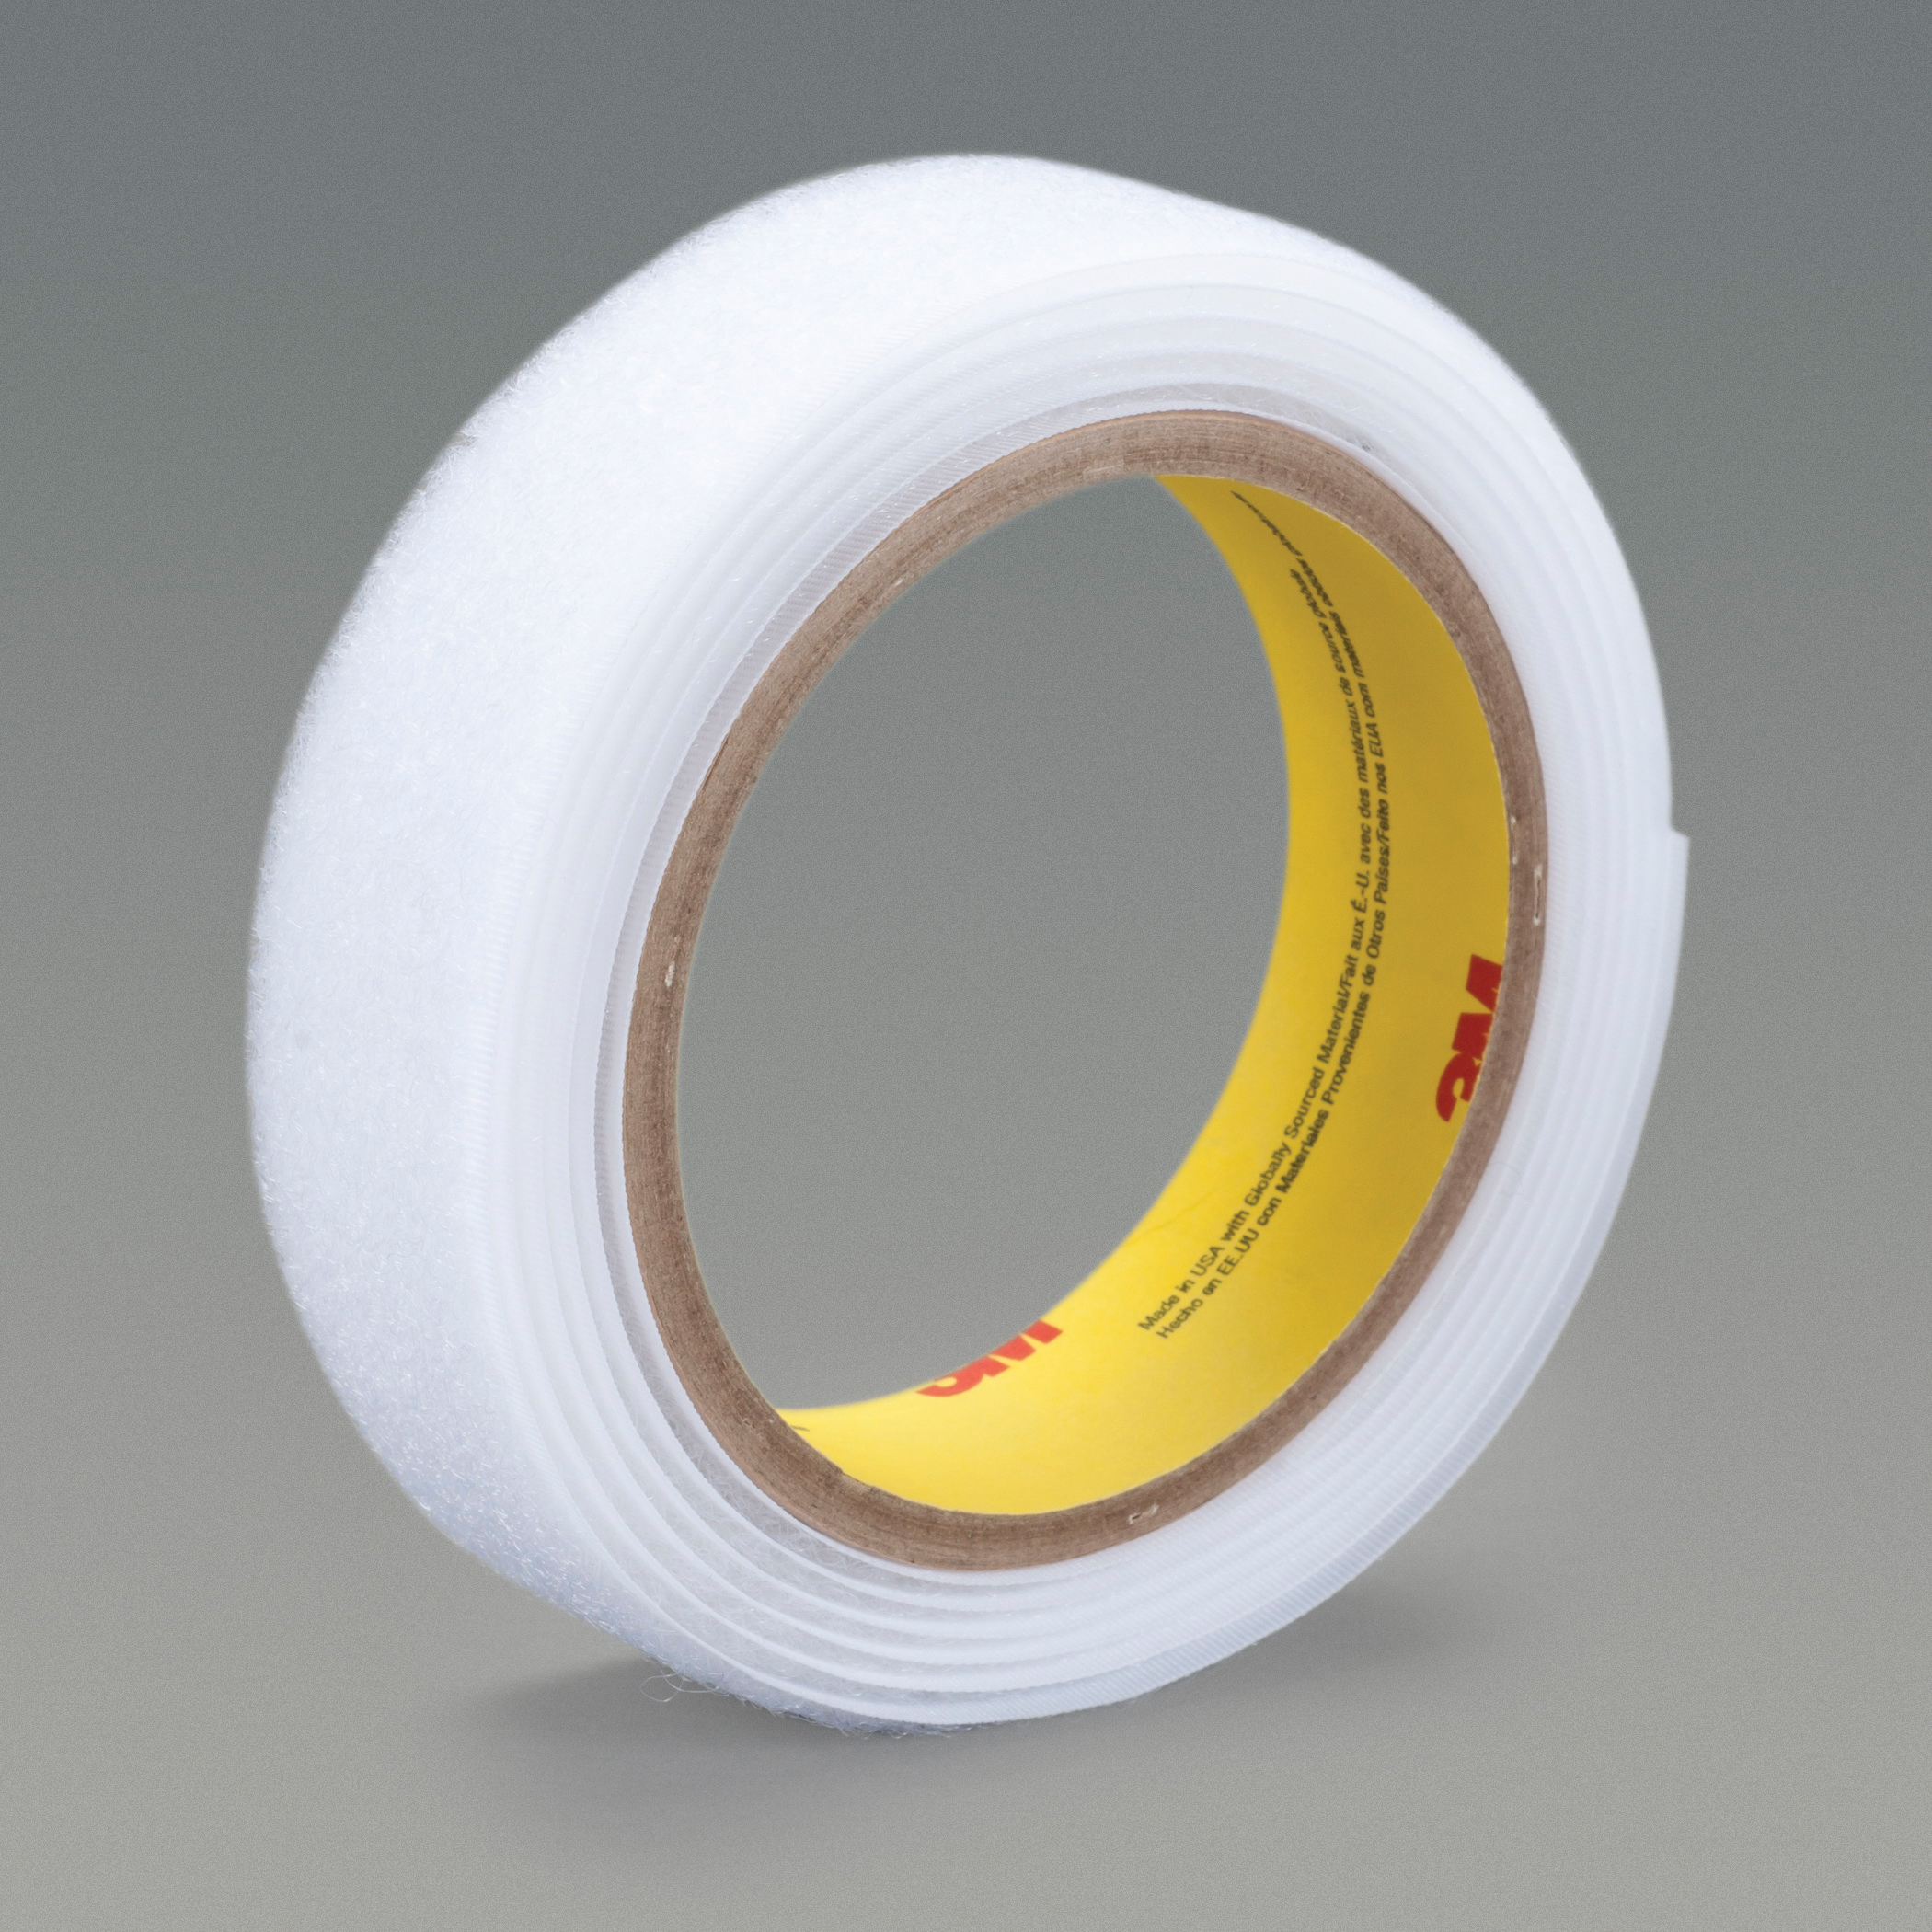 3M™ 021200-38268 Reclosable Hook Fastener Tape, 50 yd L x 1 in W, 0.15 in THK Engaged, Synthetic Rubber Adhesive, Woven Nylon Backing, White